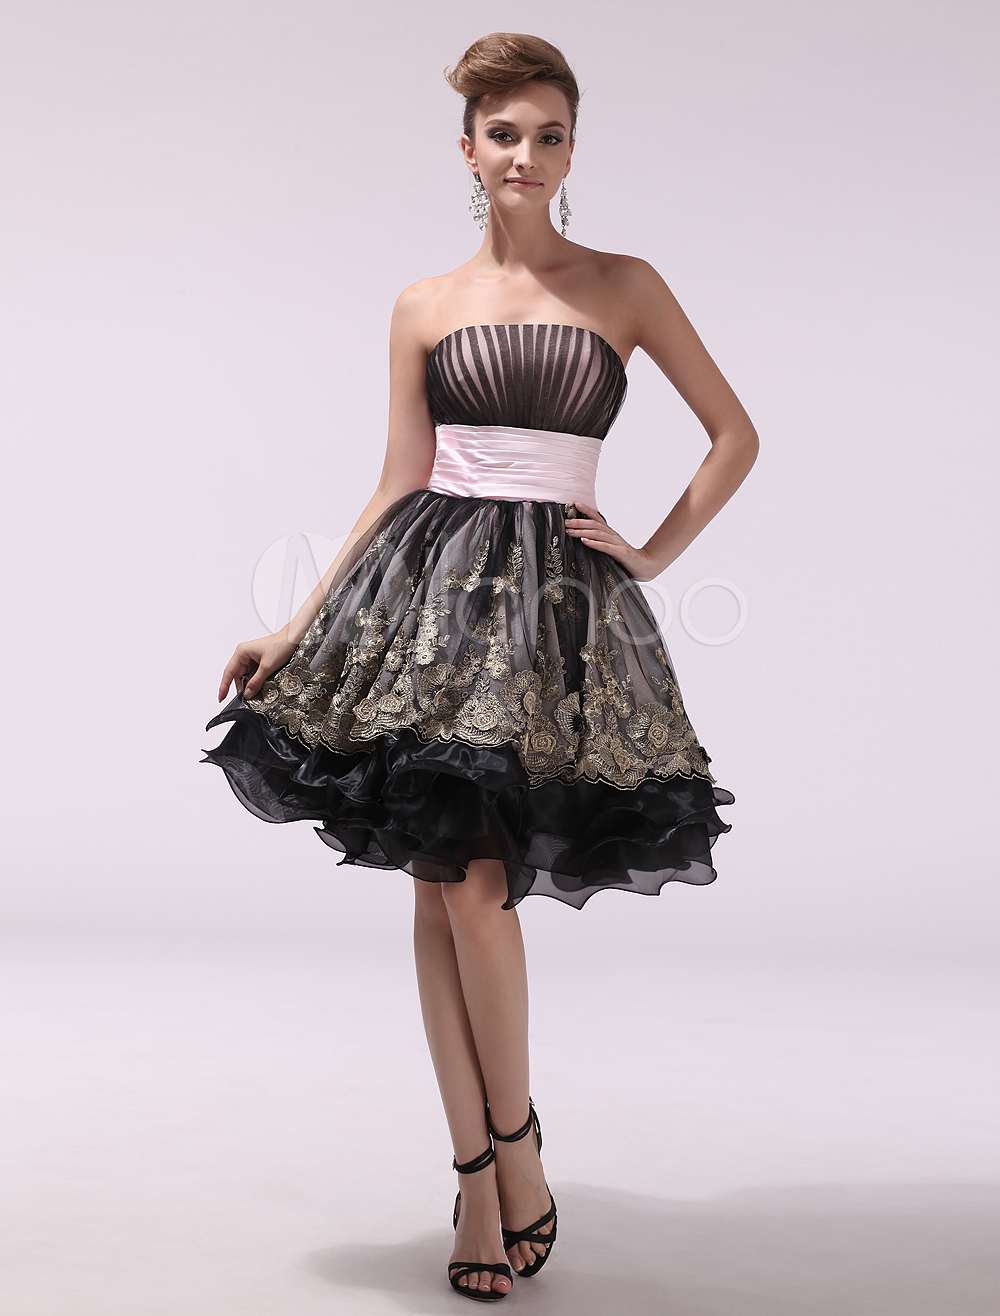 Black Strapless Sleeveless Pleated A-line Organza Prom Dress | Prom ...